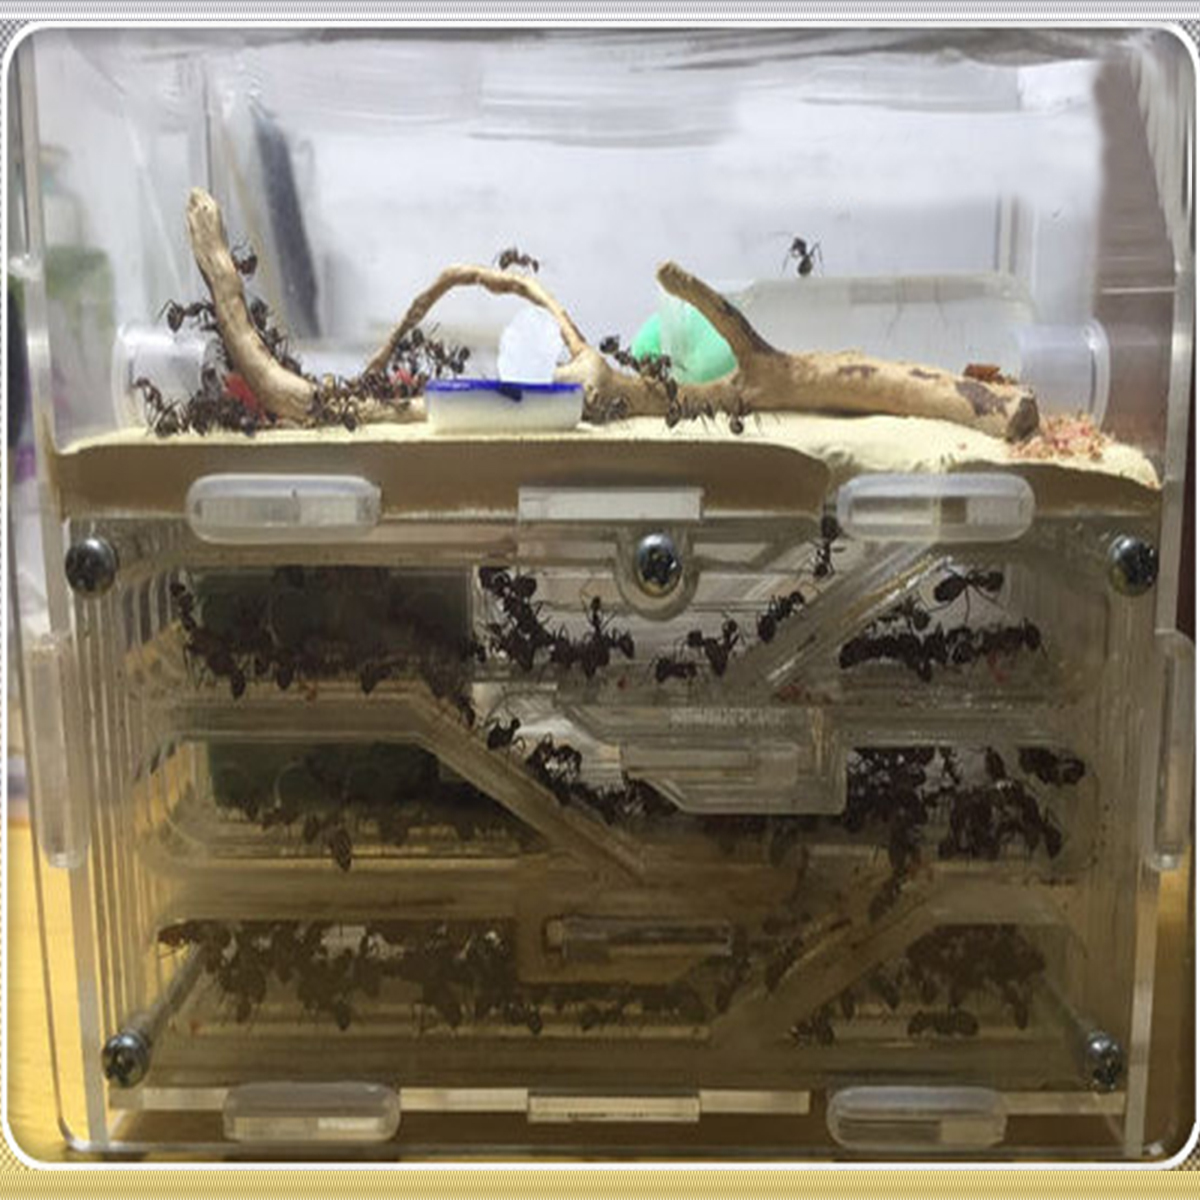 150mmx54mmx110mm Big DIY Moisture With Feeding Area Ant Nest Ant Farm Acrylic Insect Ant Nests Villa